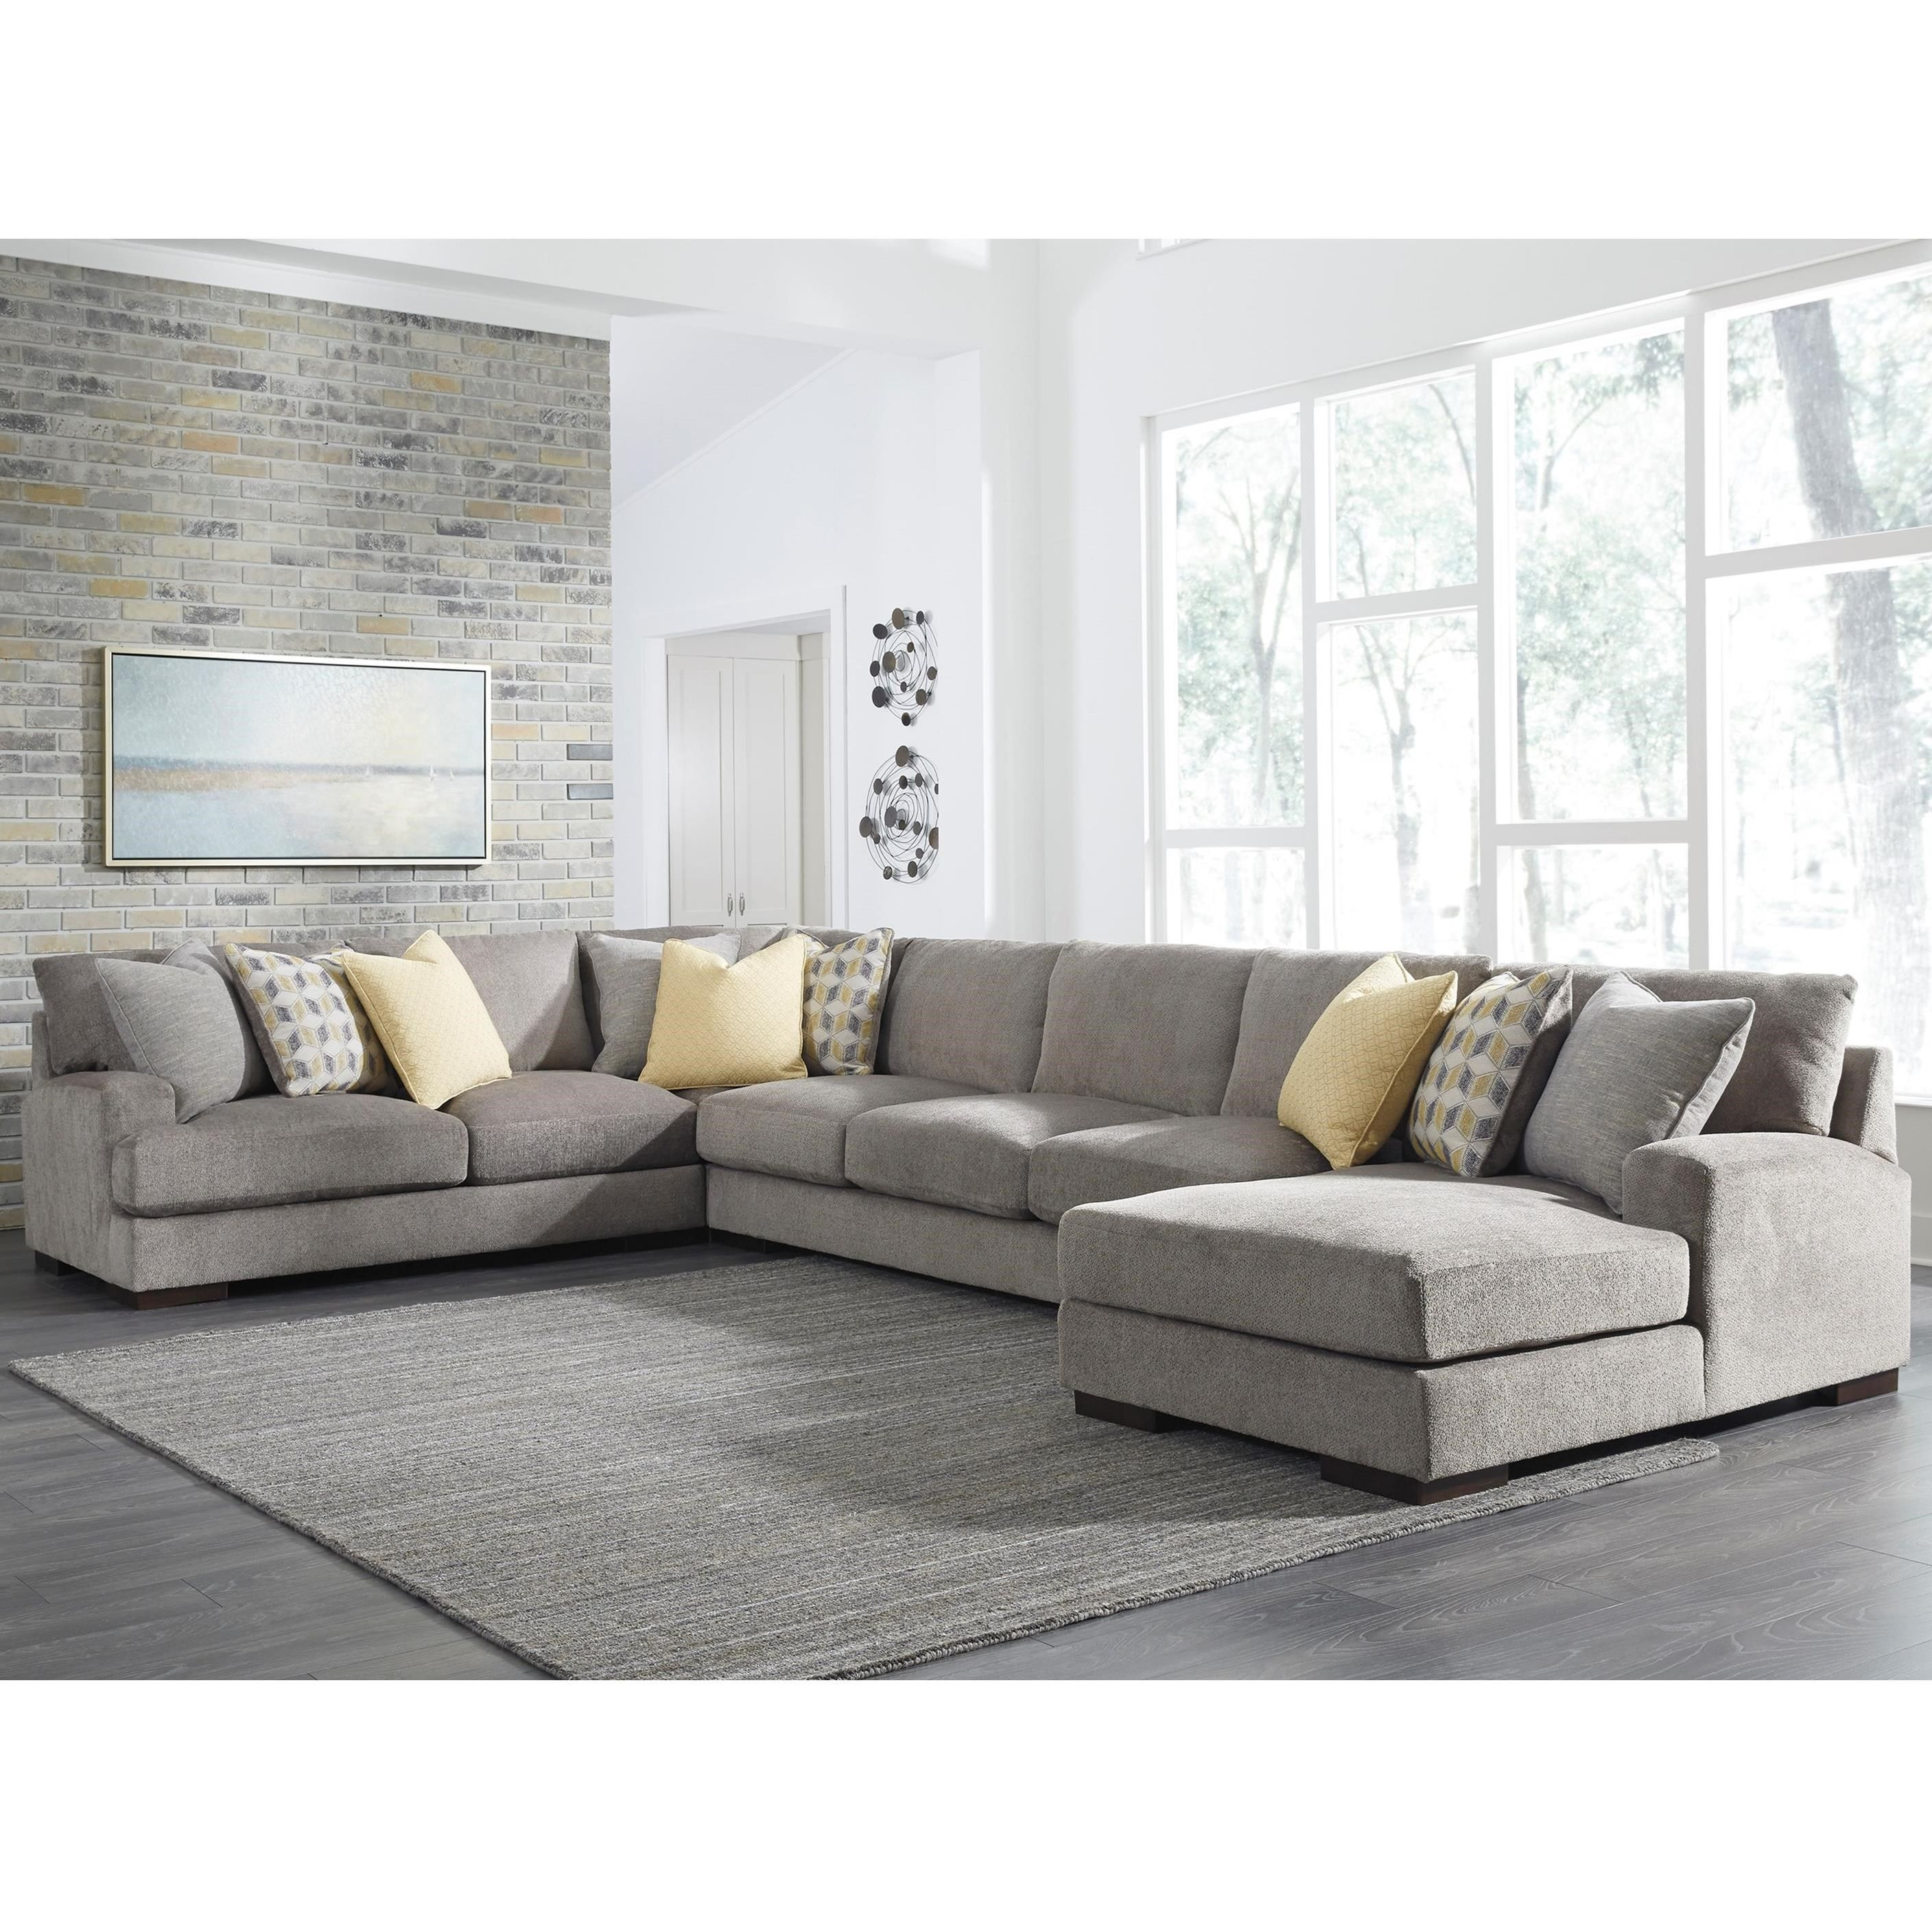 Best Fallsworth 4 Piece Sectional By Benchcraft At Miskelly Furniture Furniture Sectional Sofa 400 x 300